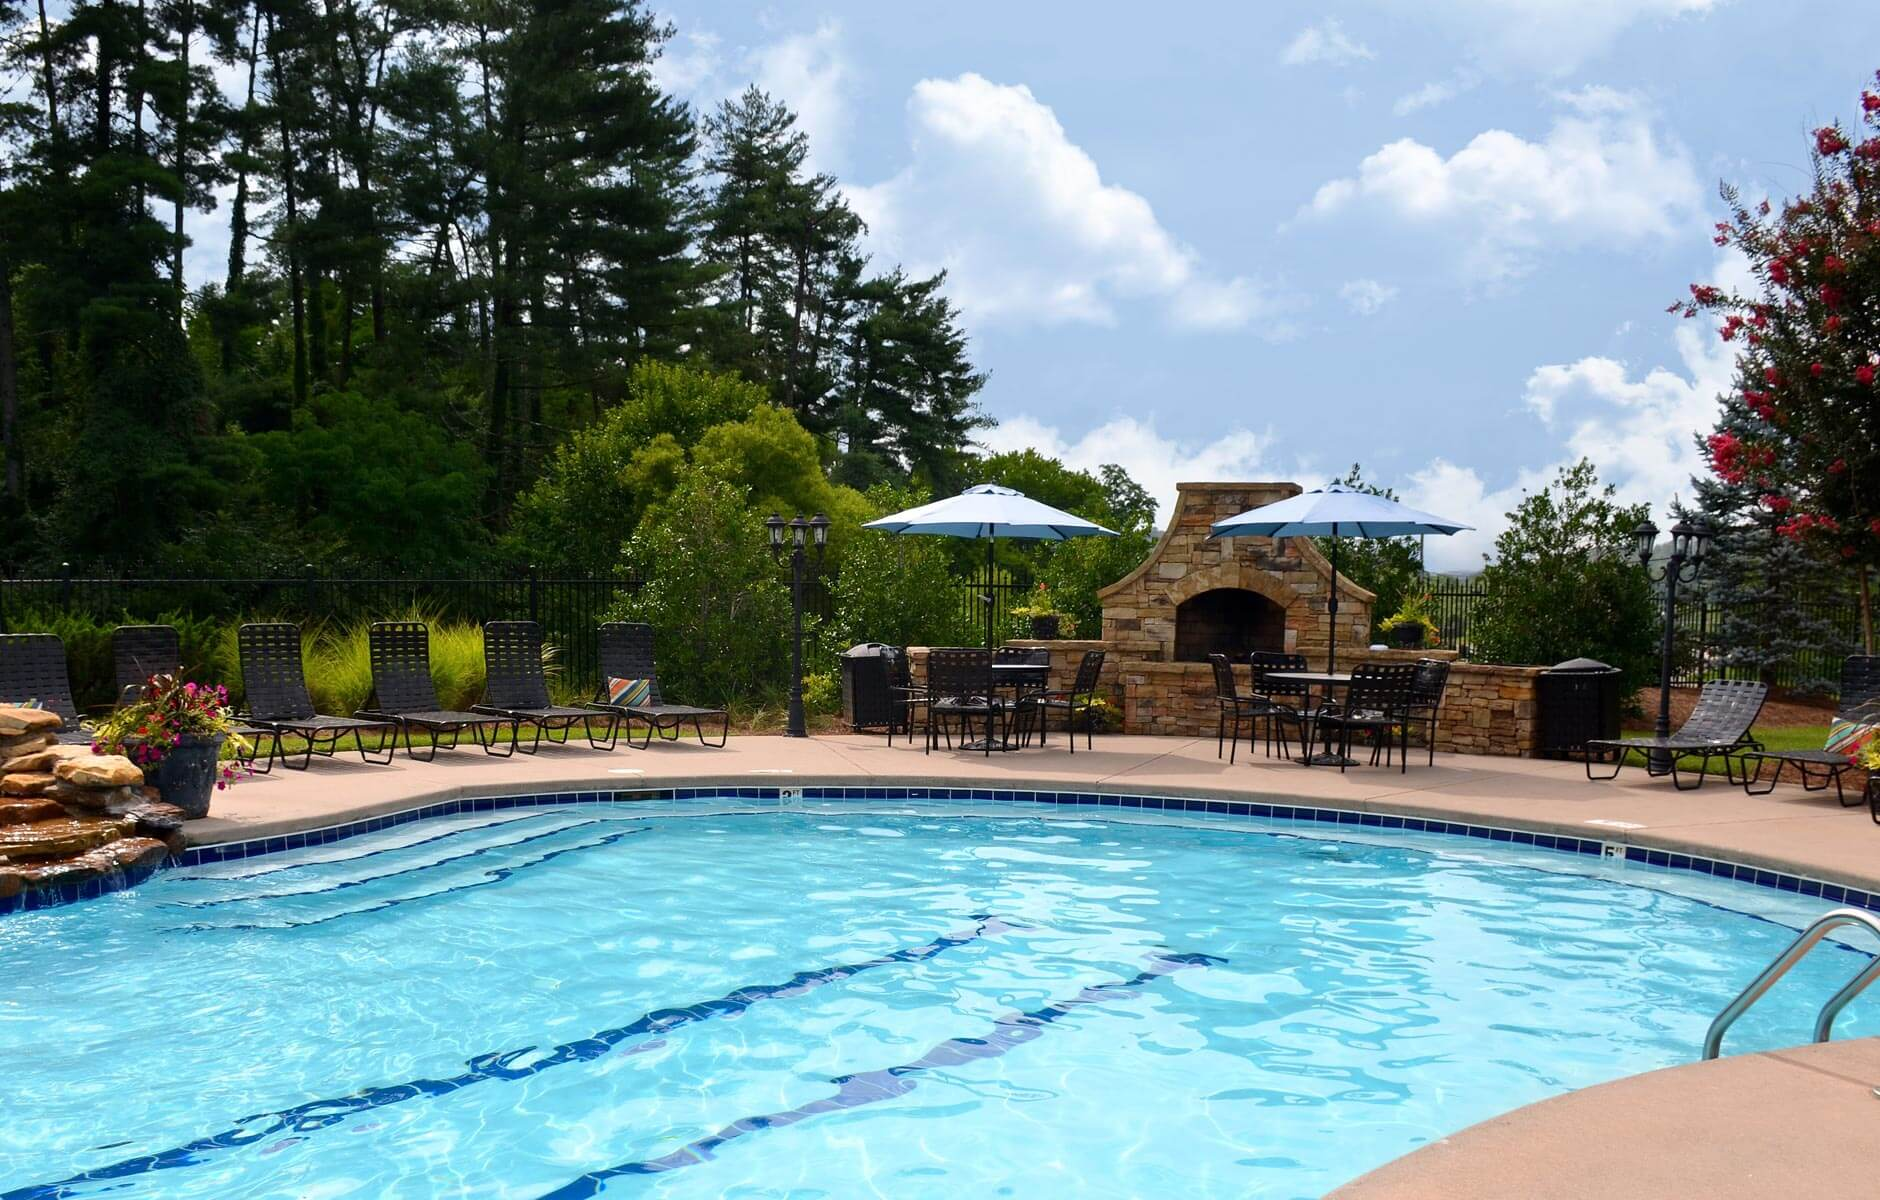 Multifamily property pool surrounded by inviting landscape